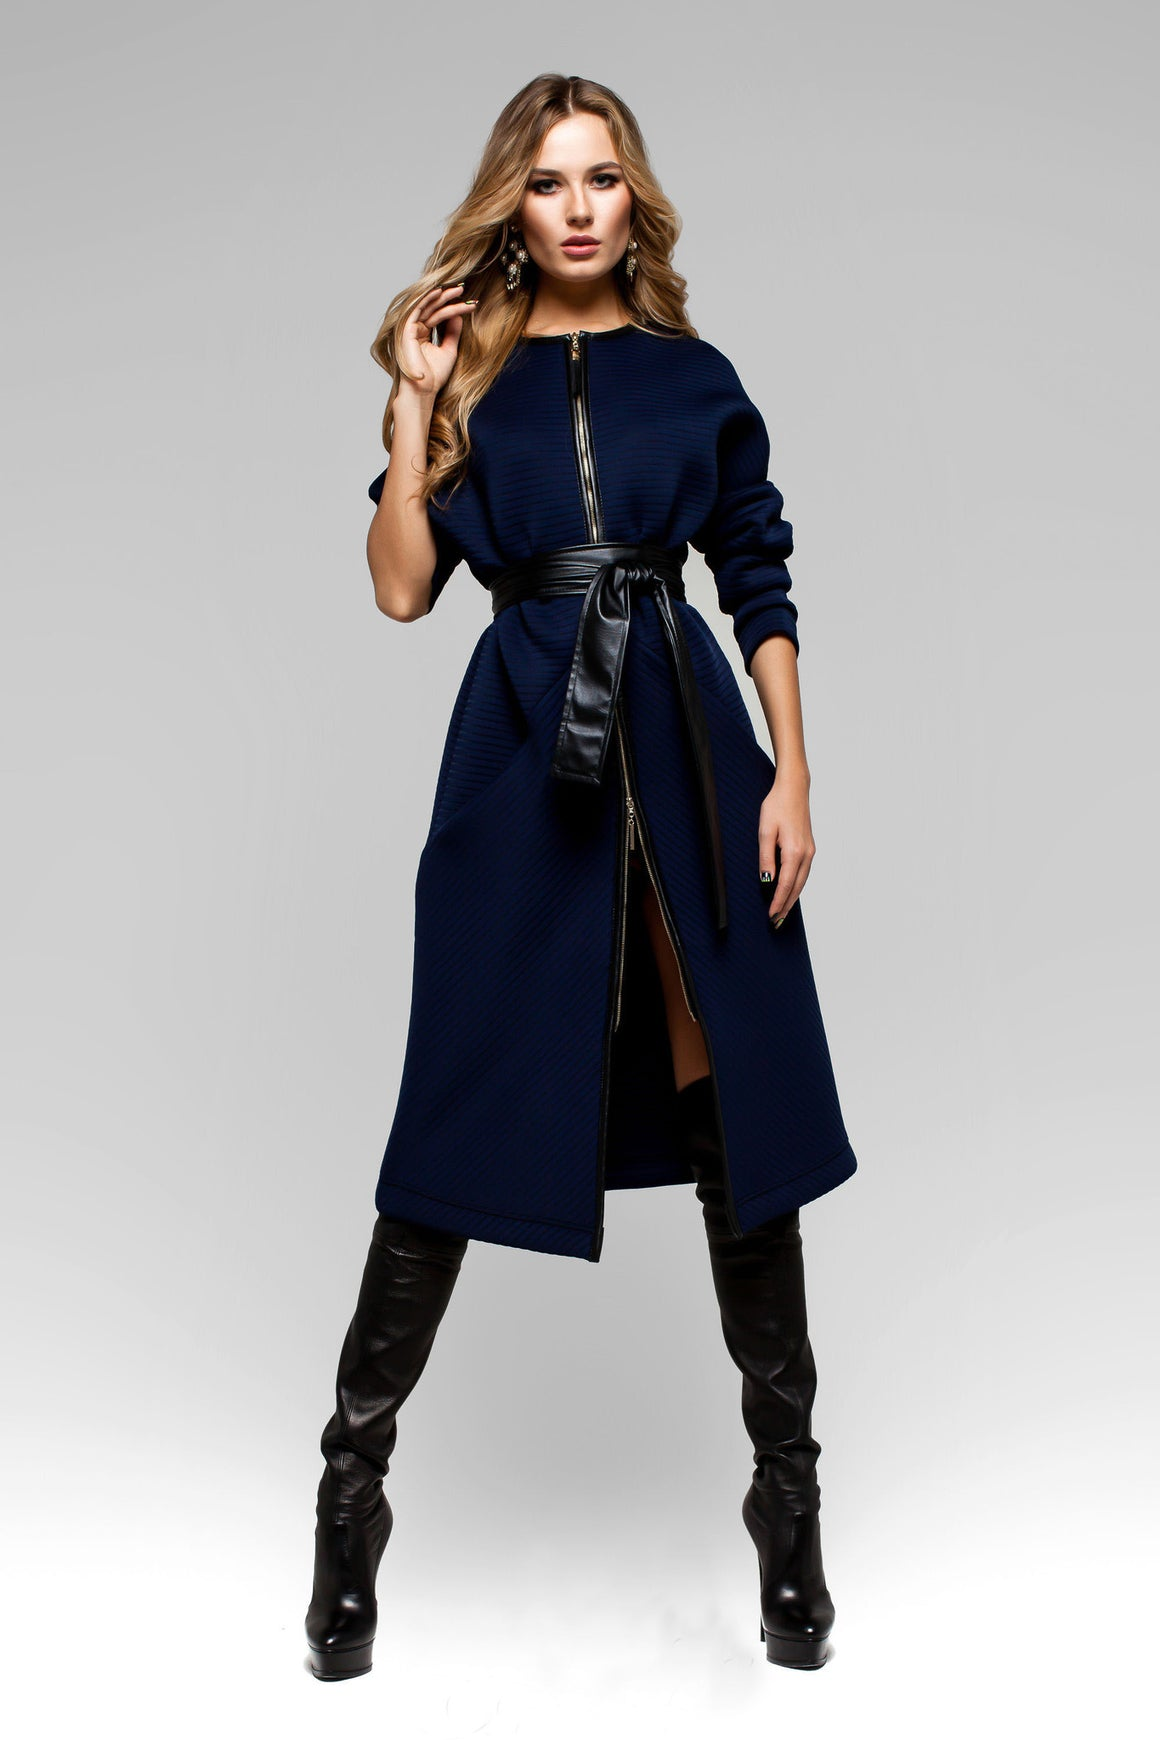 UGHI Royal Blue Coat with Wide Belt - Kollekcio  - 1